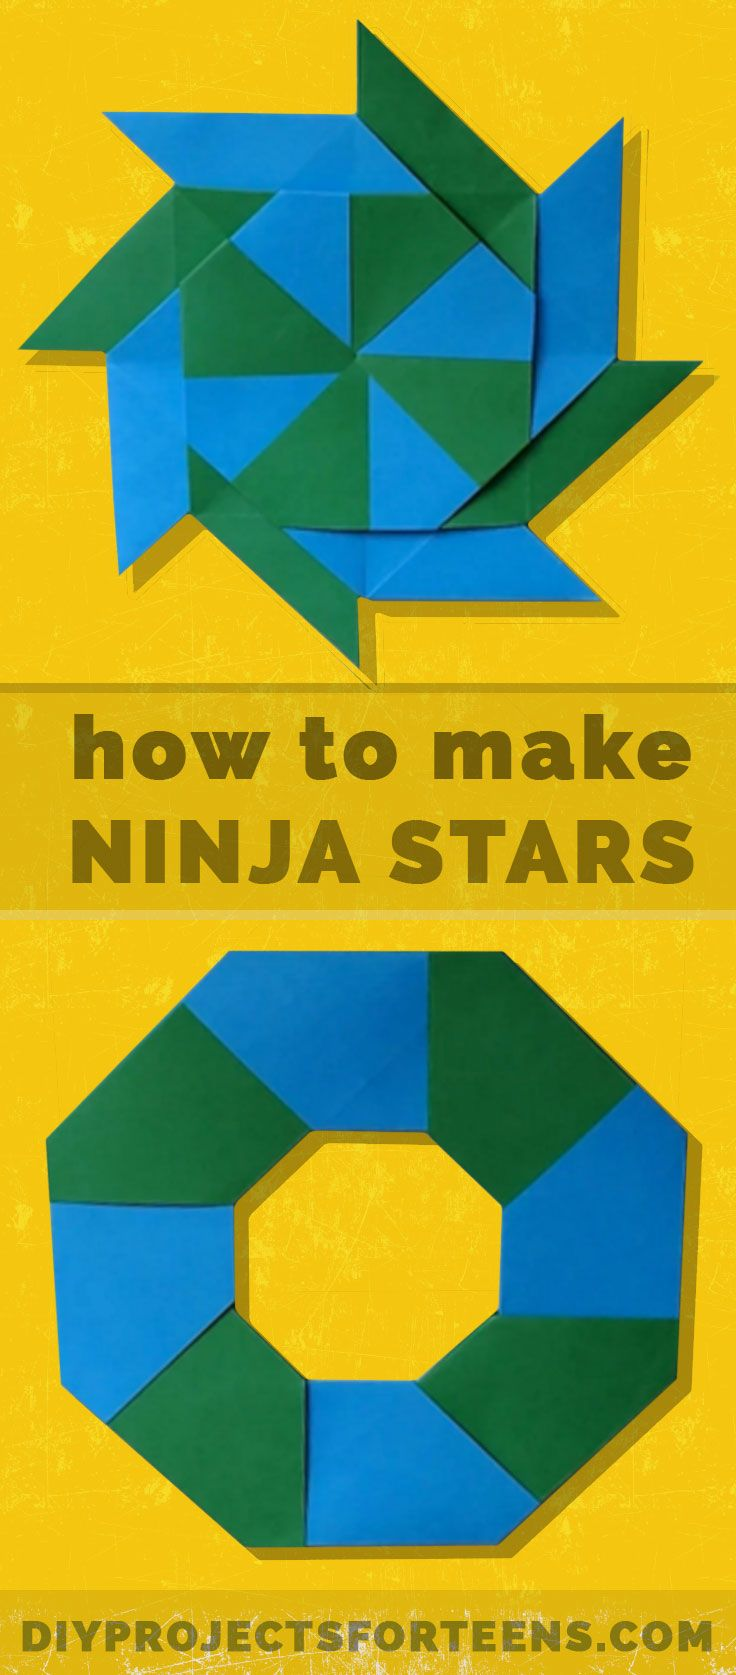 Crafts For Boys - How To Make Ninja Stars. Cool Paper Crafts for Kids and Teens. Boys and Girls love these Cheap but Cool DIY Projects You Can Make At Home http://diyprojectsforteens.com/how-to-make-ninja-stars/